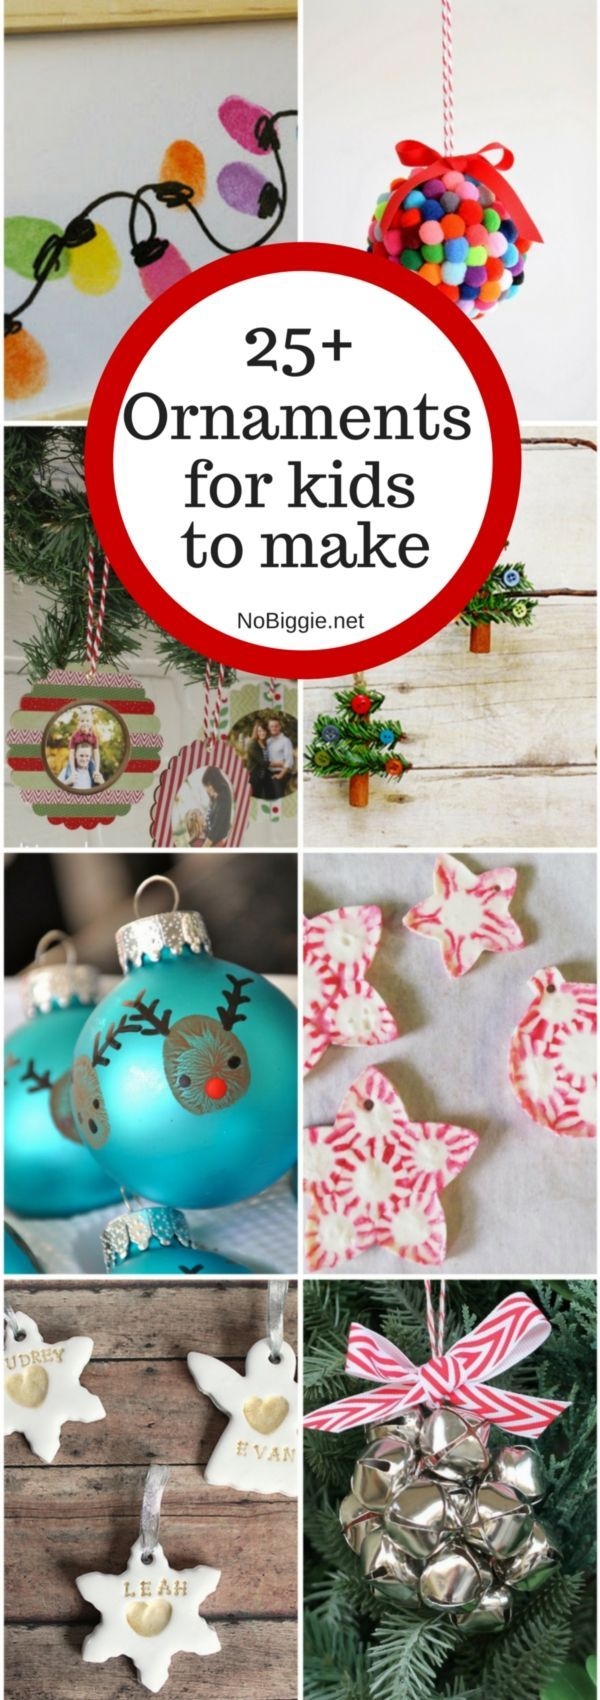 25  ornaments kids can make via @nobiggie